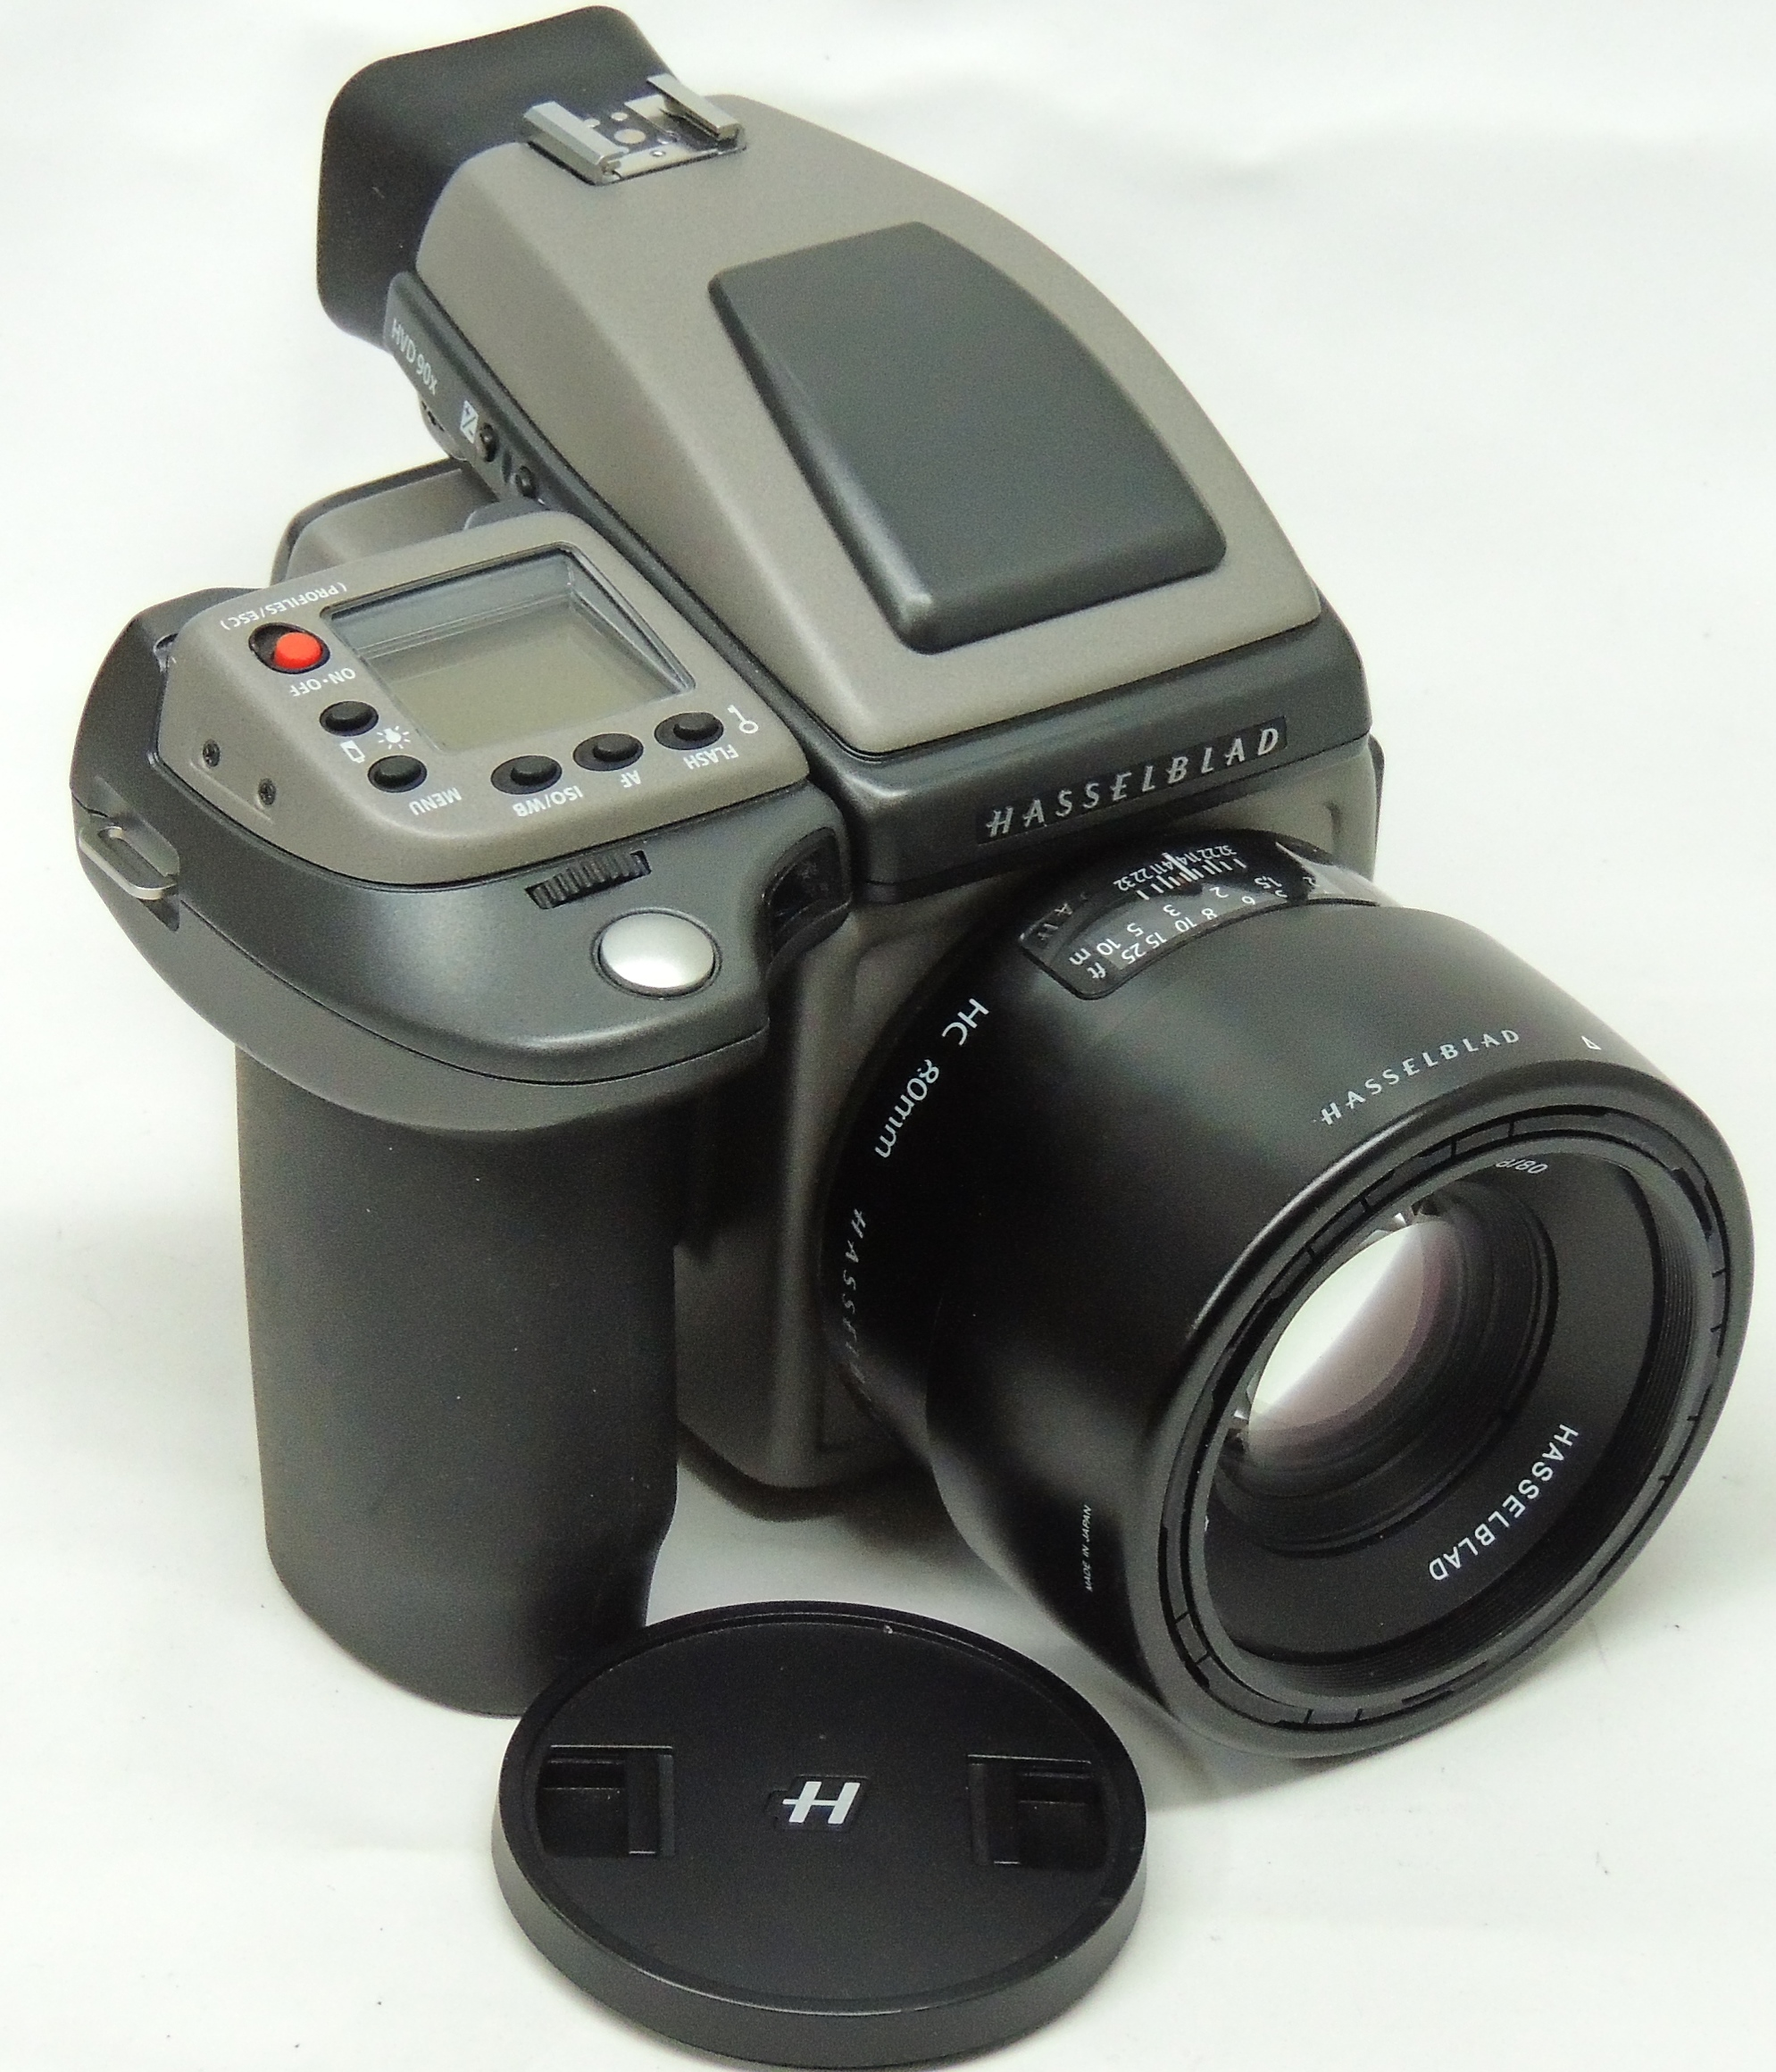 NEW DRIVER: HASSELBLAD HVD90X CAMERA VIEWFINDER